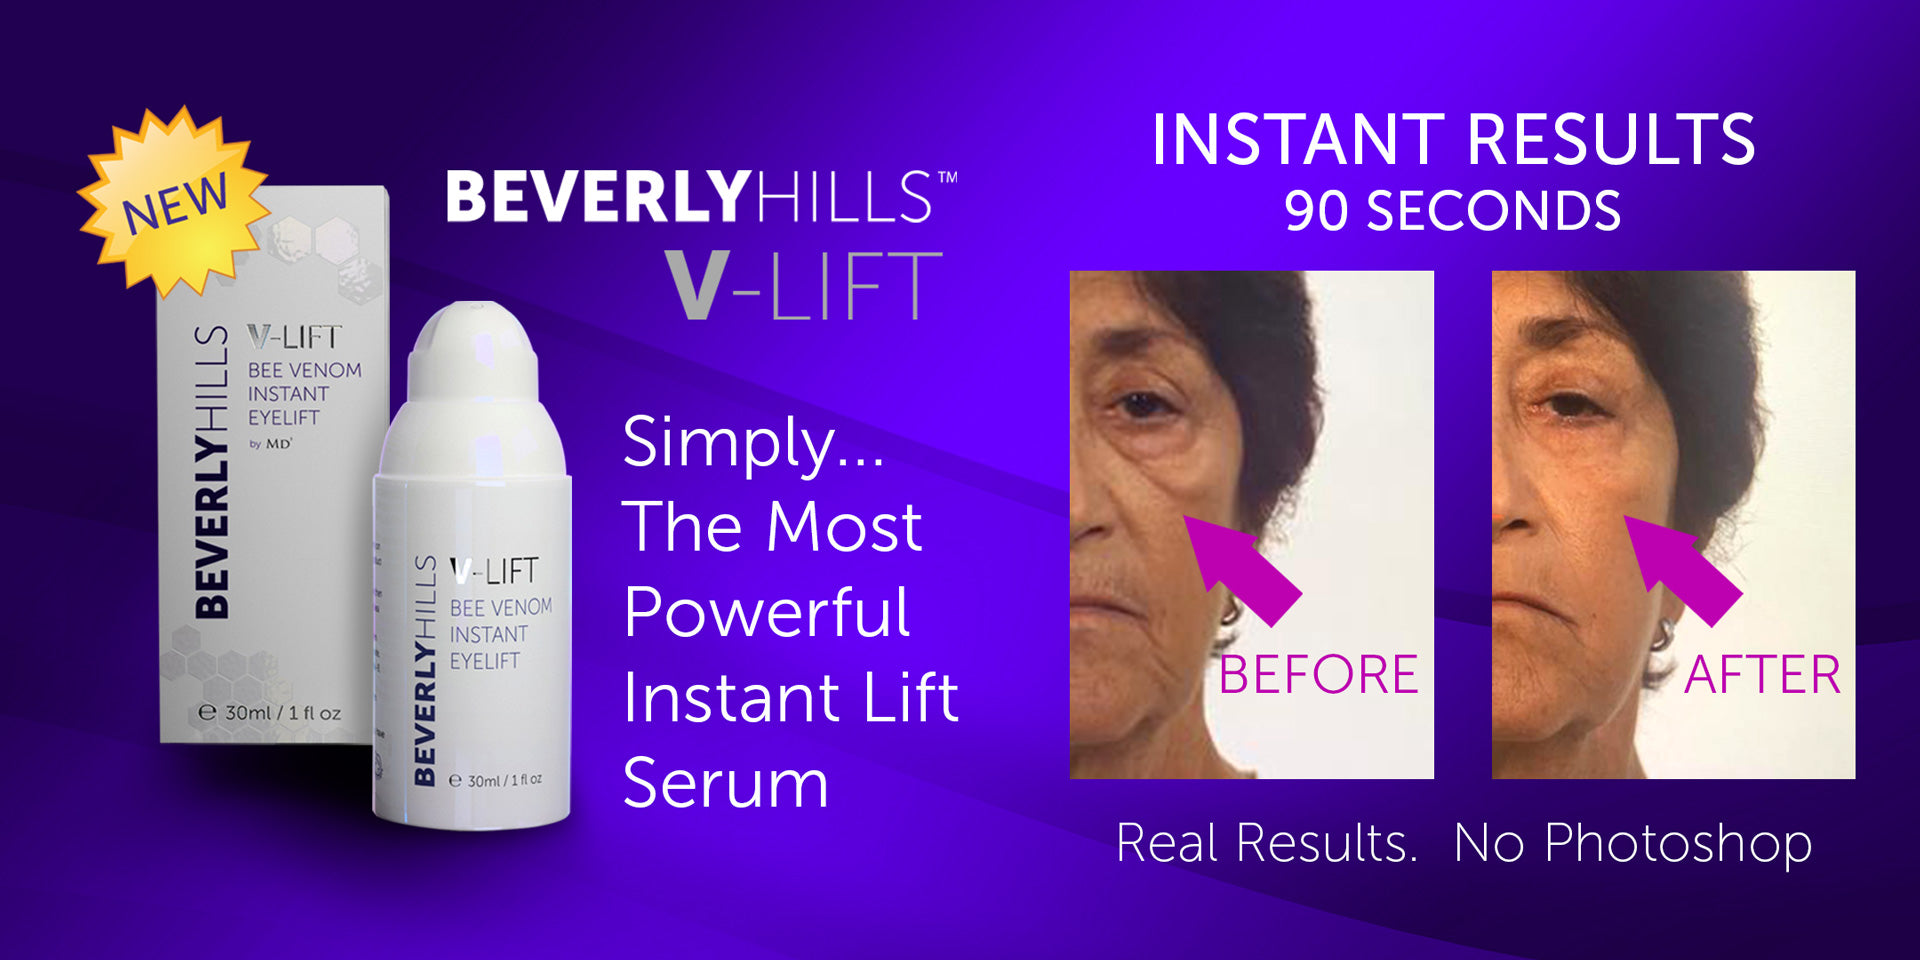 Instant-Facelift-90-Seconds-Bee-Venom-Beverly-Hills-V-Lift